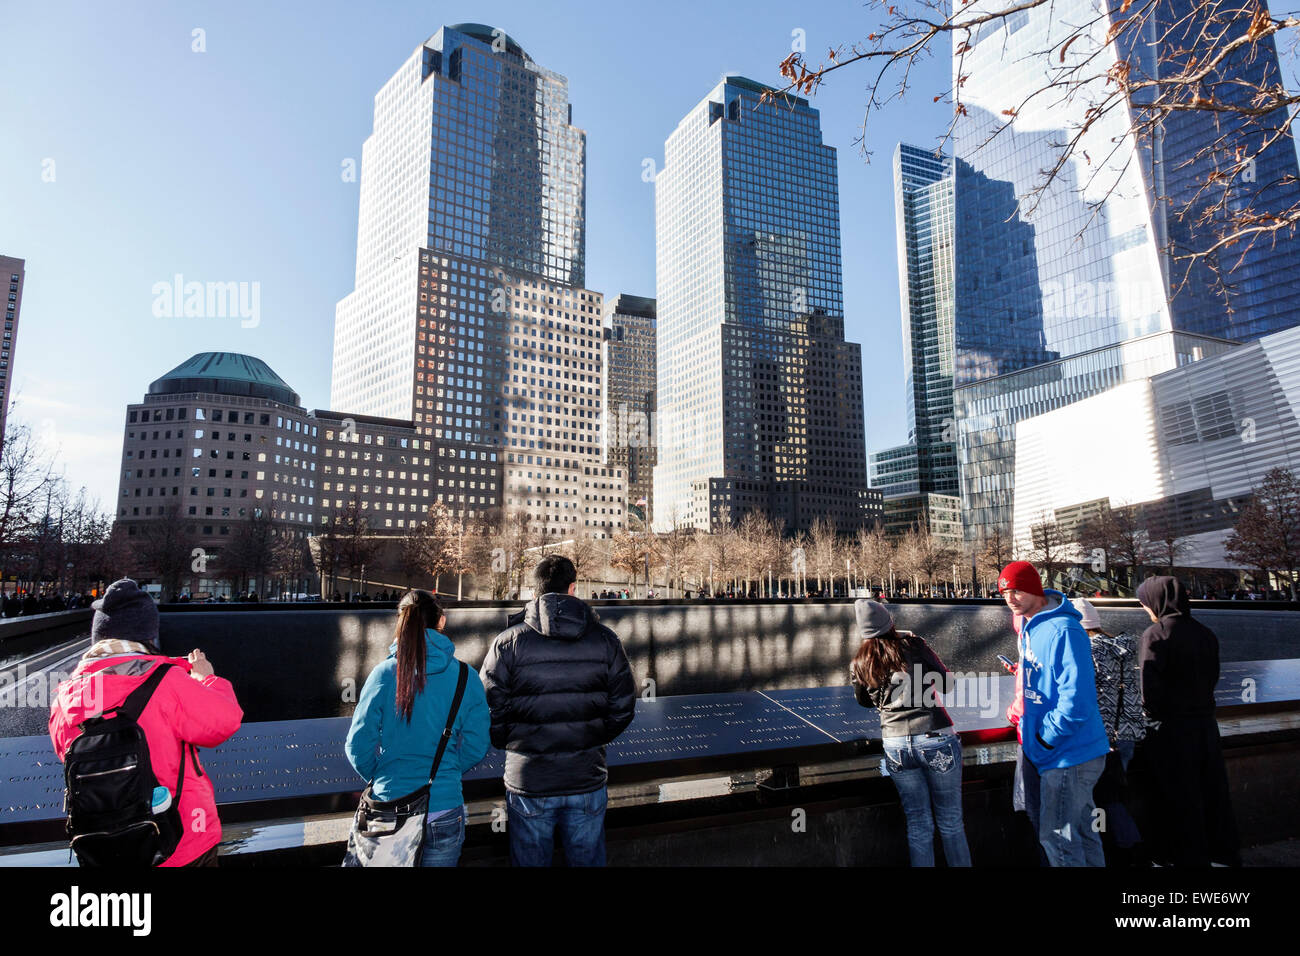 New York City NY NYC Manhattan Lower Financial District National September 11 Memorial & Museum 911 9/11 plaza - Stock Image